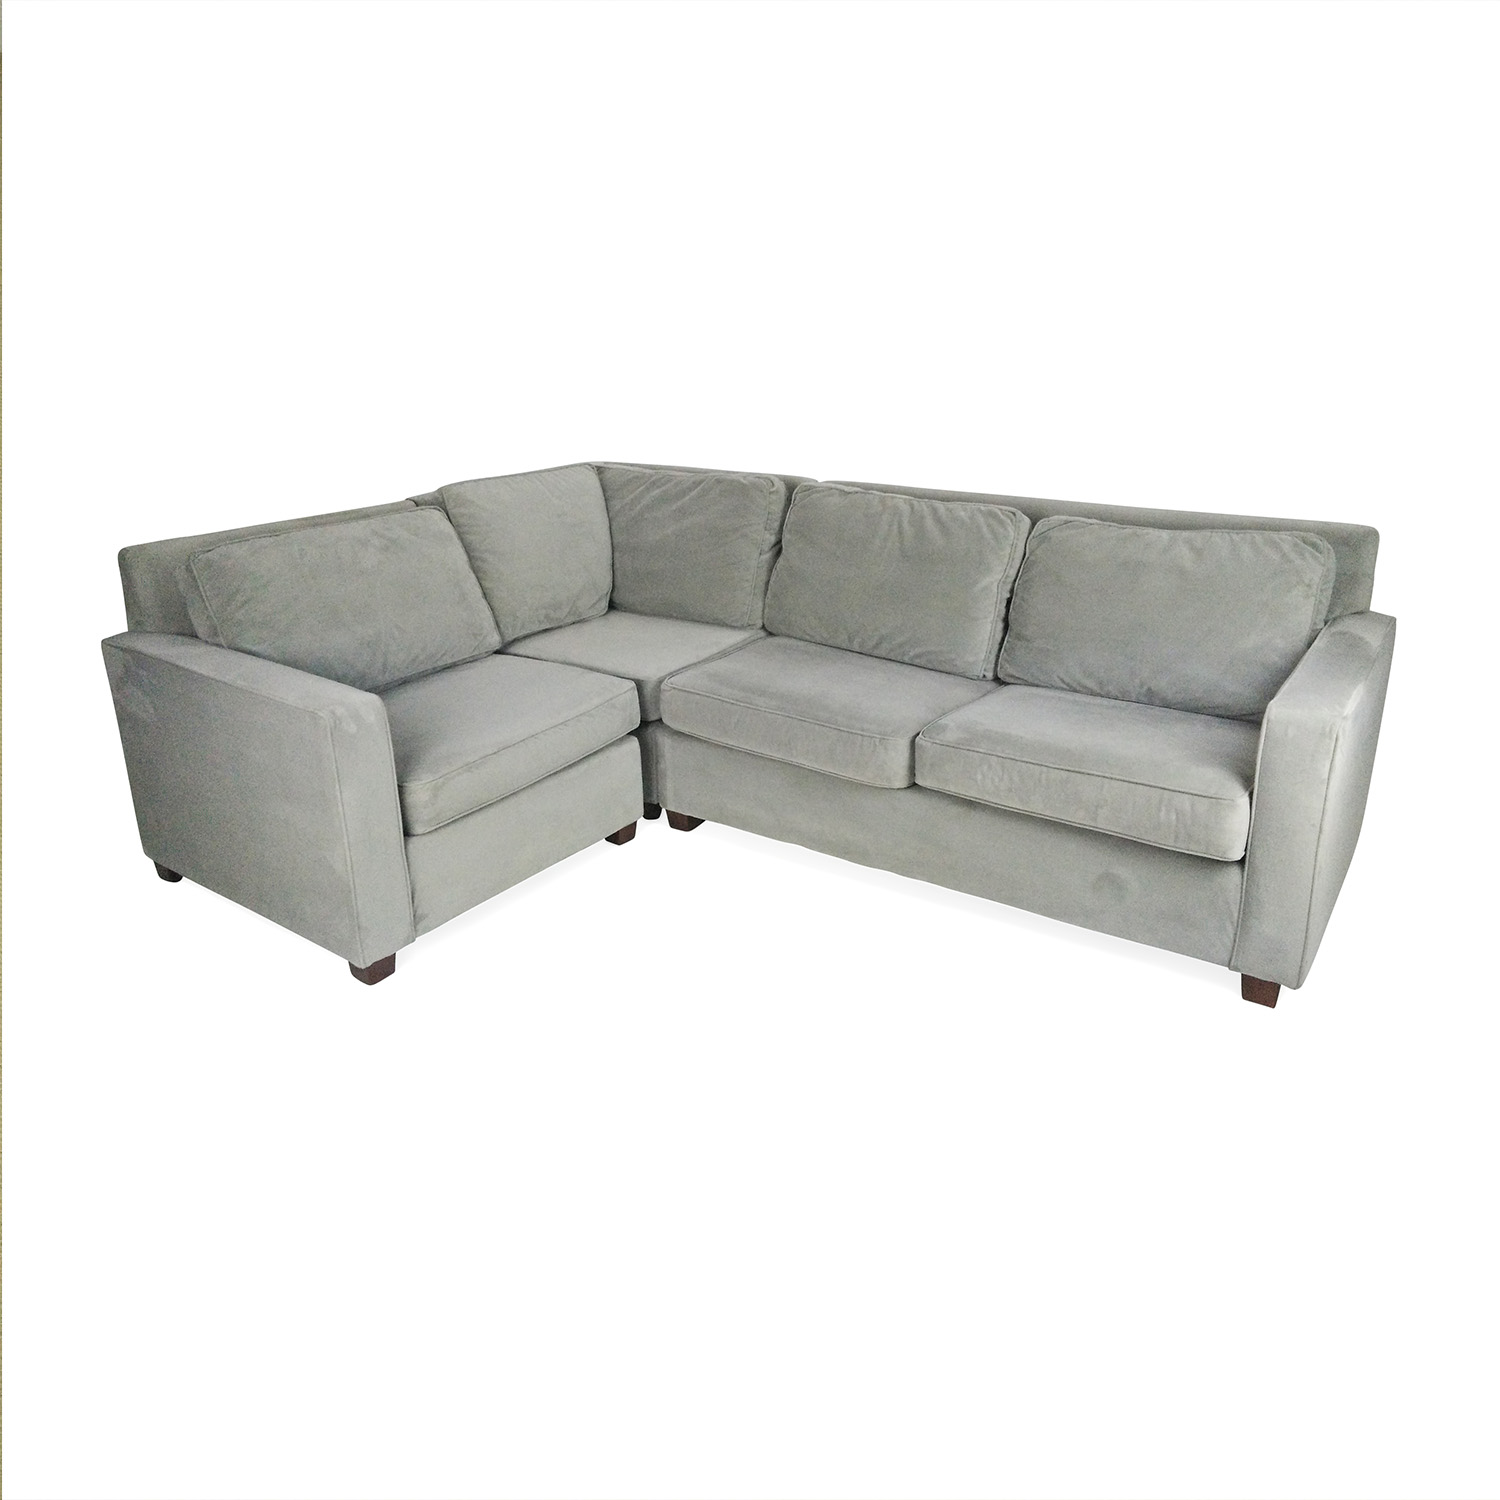 49 Off West Elm West Elm Henry 3 Piece Sectional Sofas